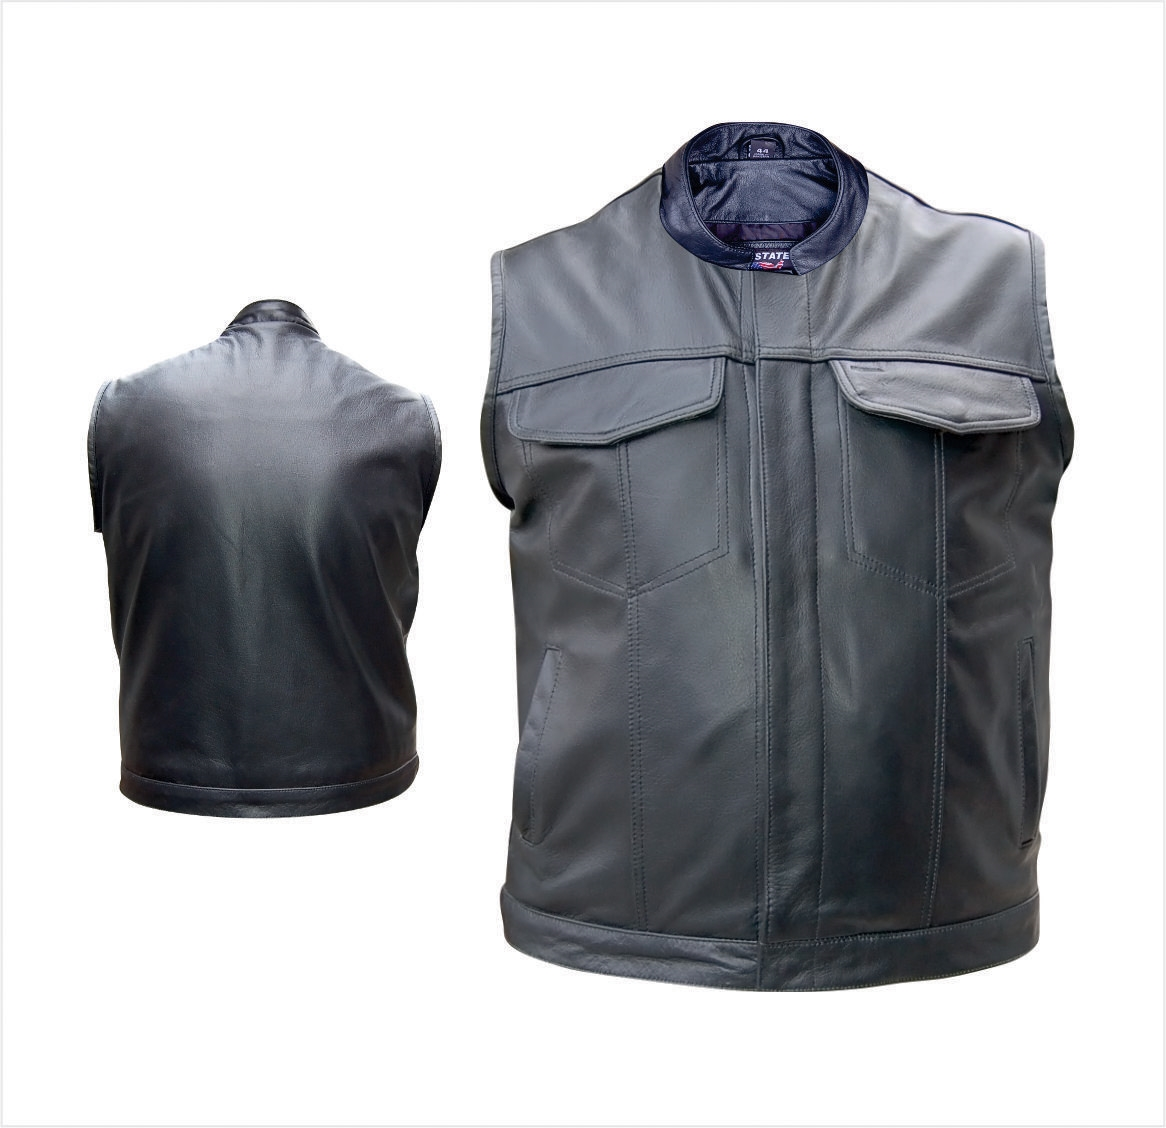 Men's Leather Vest in Denim style with Gun pockets & Gun Holster Single  panel back (Buffalo)